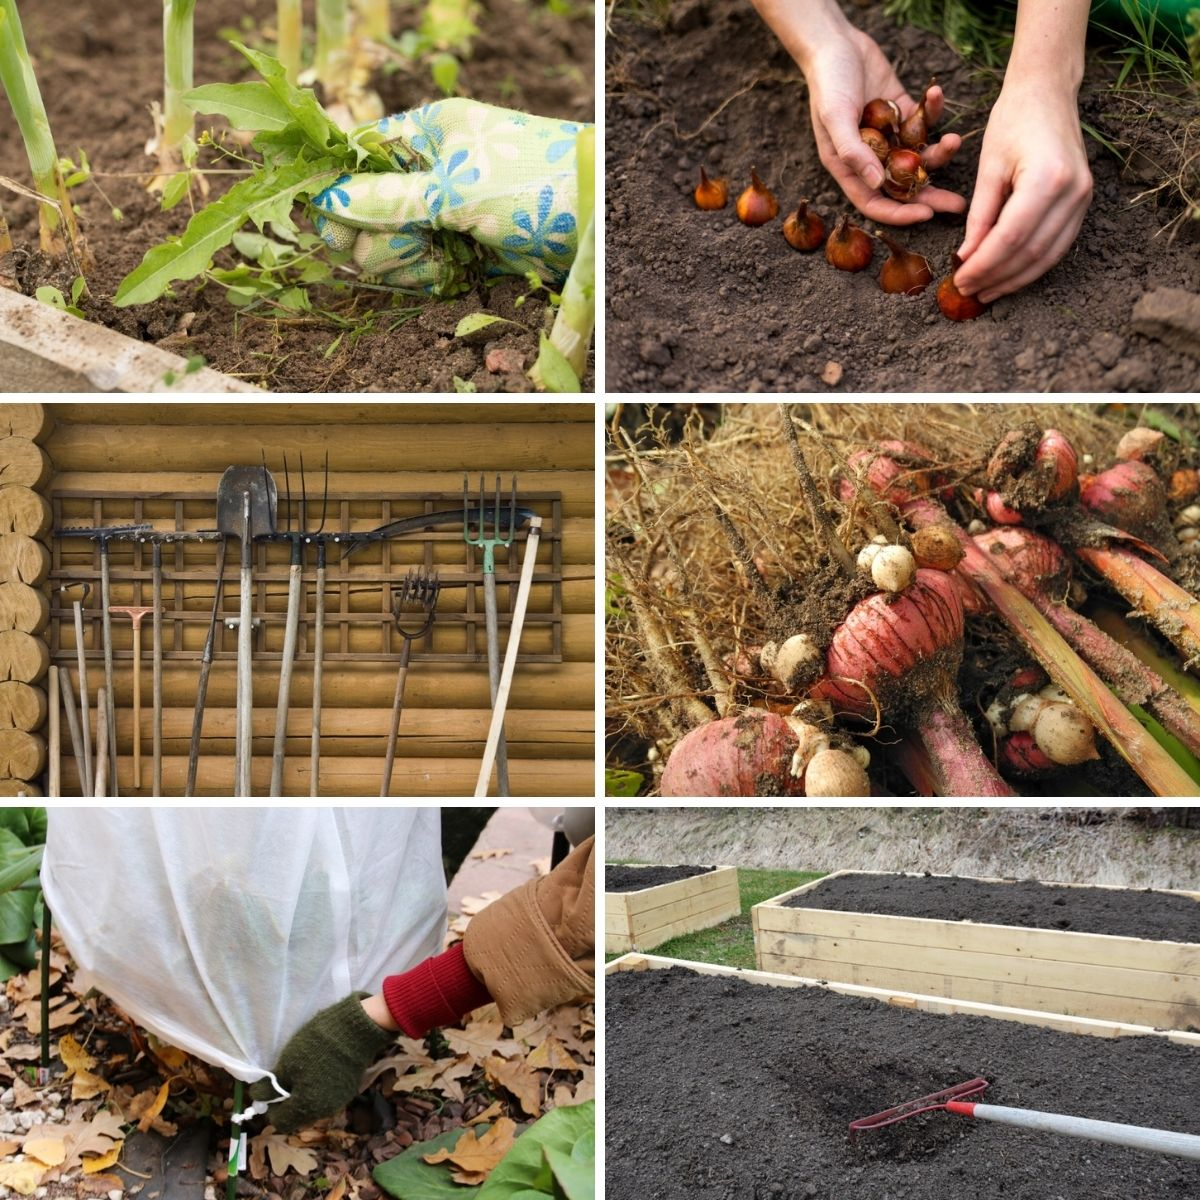 Collage photo featuring fall garden tasks.